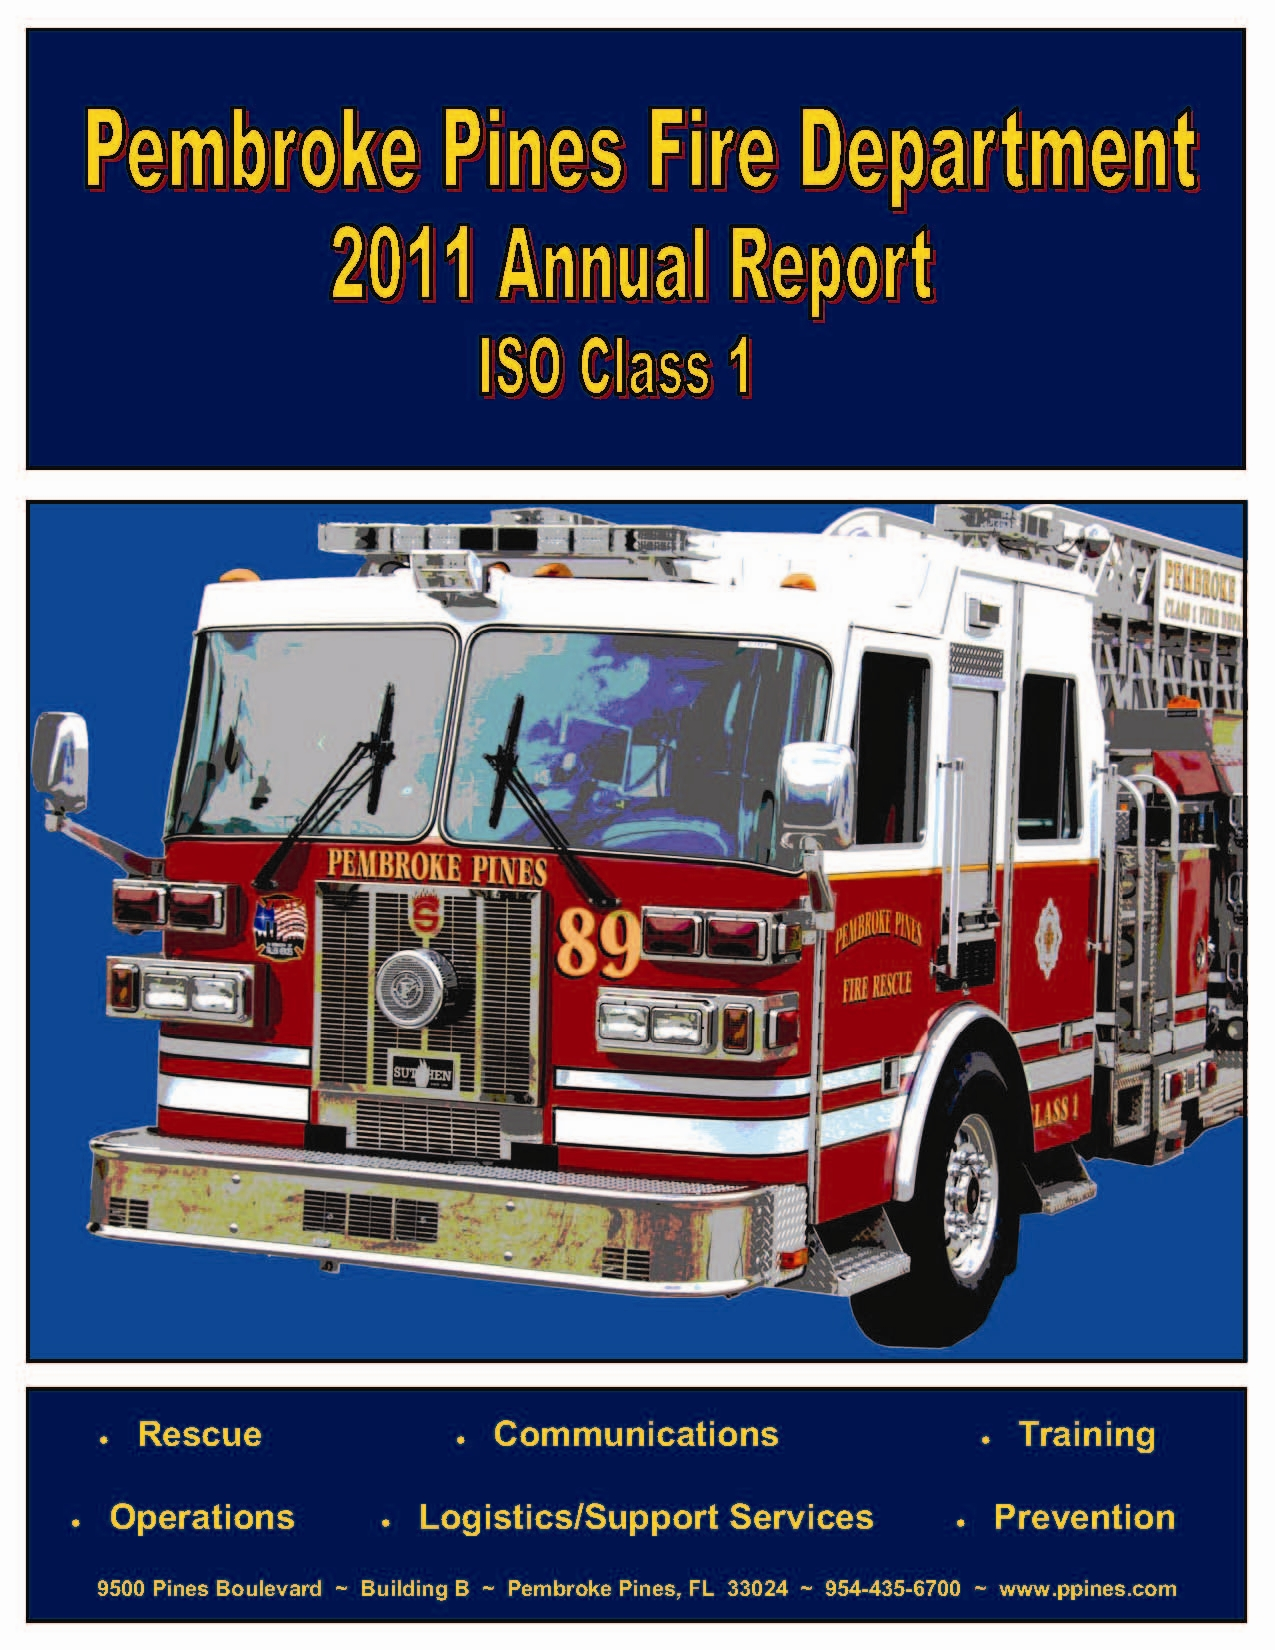 2011 Annual Report Cover.JPG